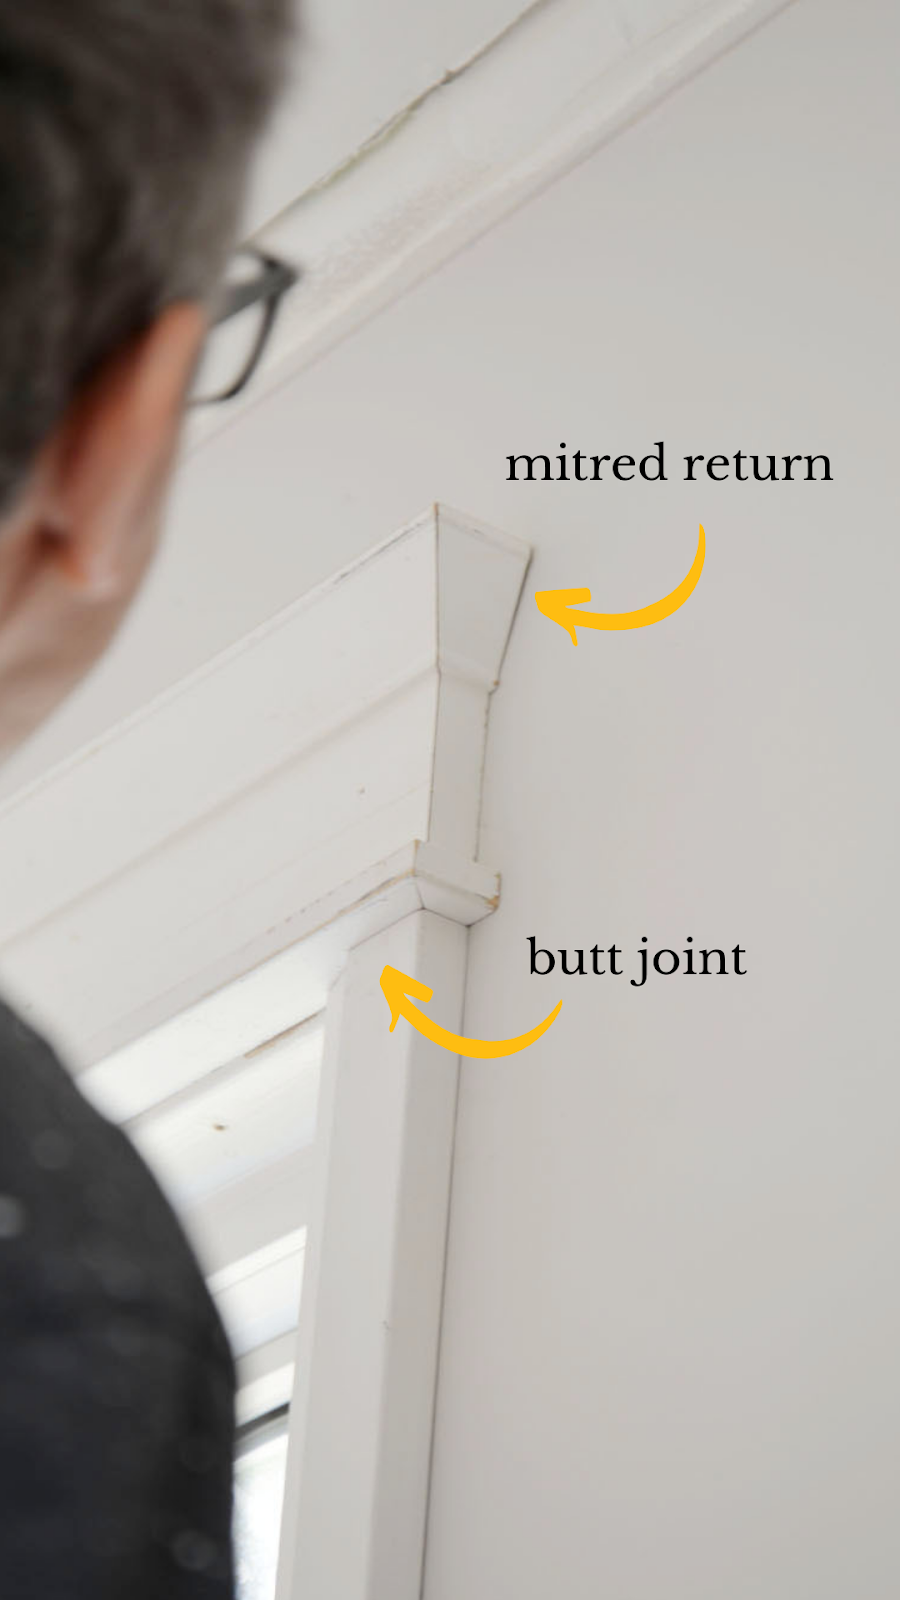 mitred return, butt joint, trim joint, how to join moulding, window casing installation, traditional moulding, shiplap alternatives